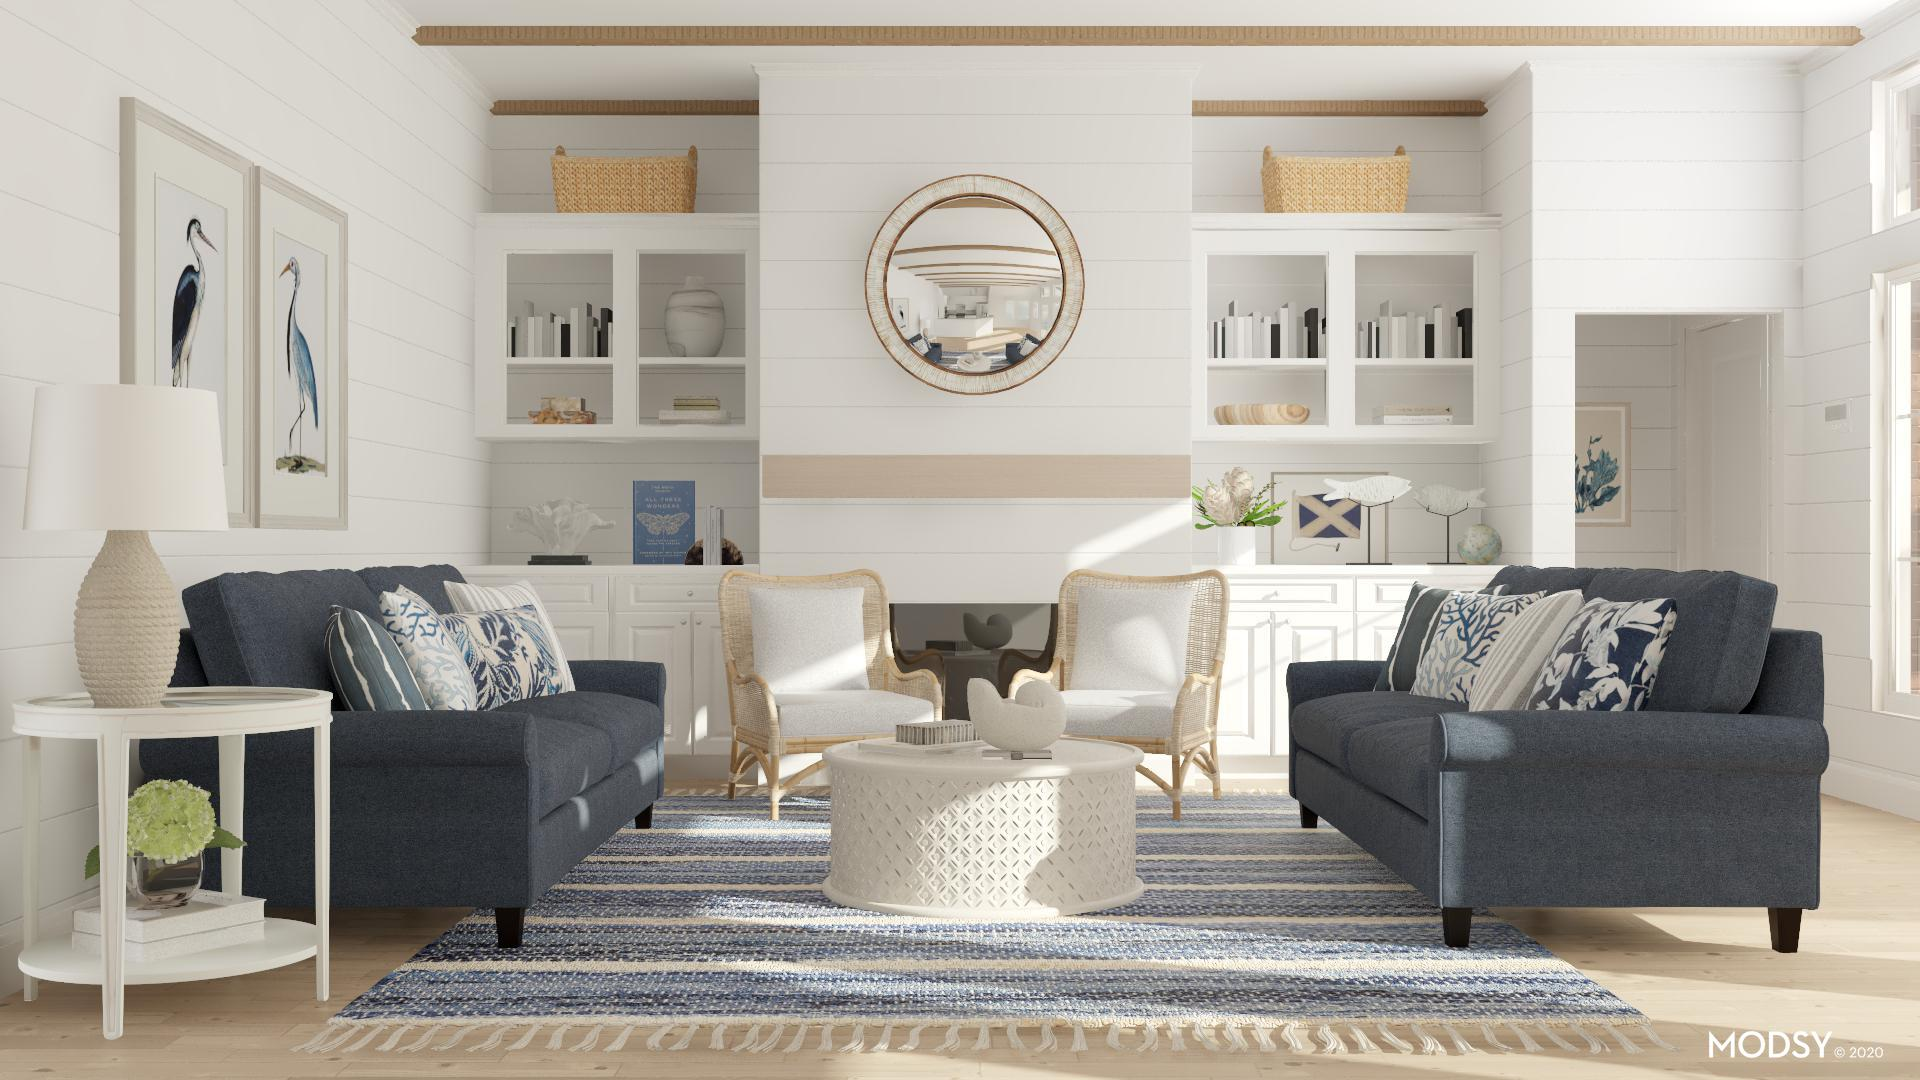 Down By The Sea | Coastal-Style Living Room Design Ideas